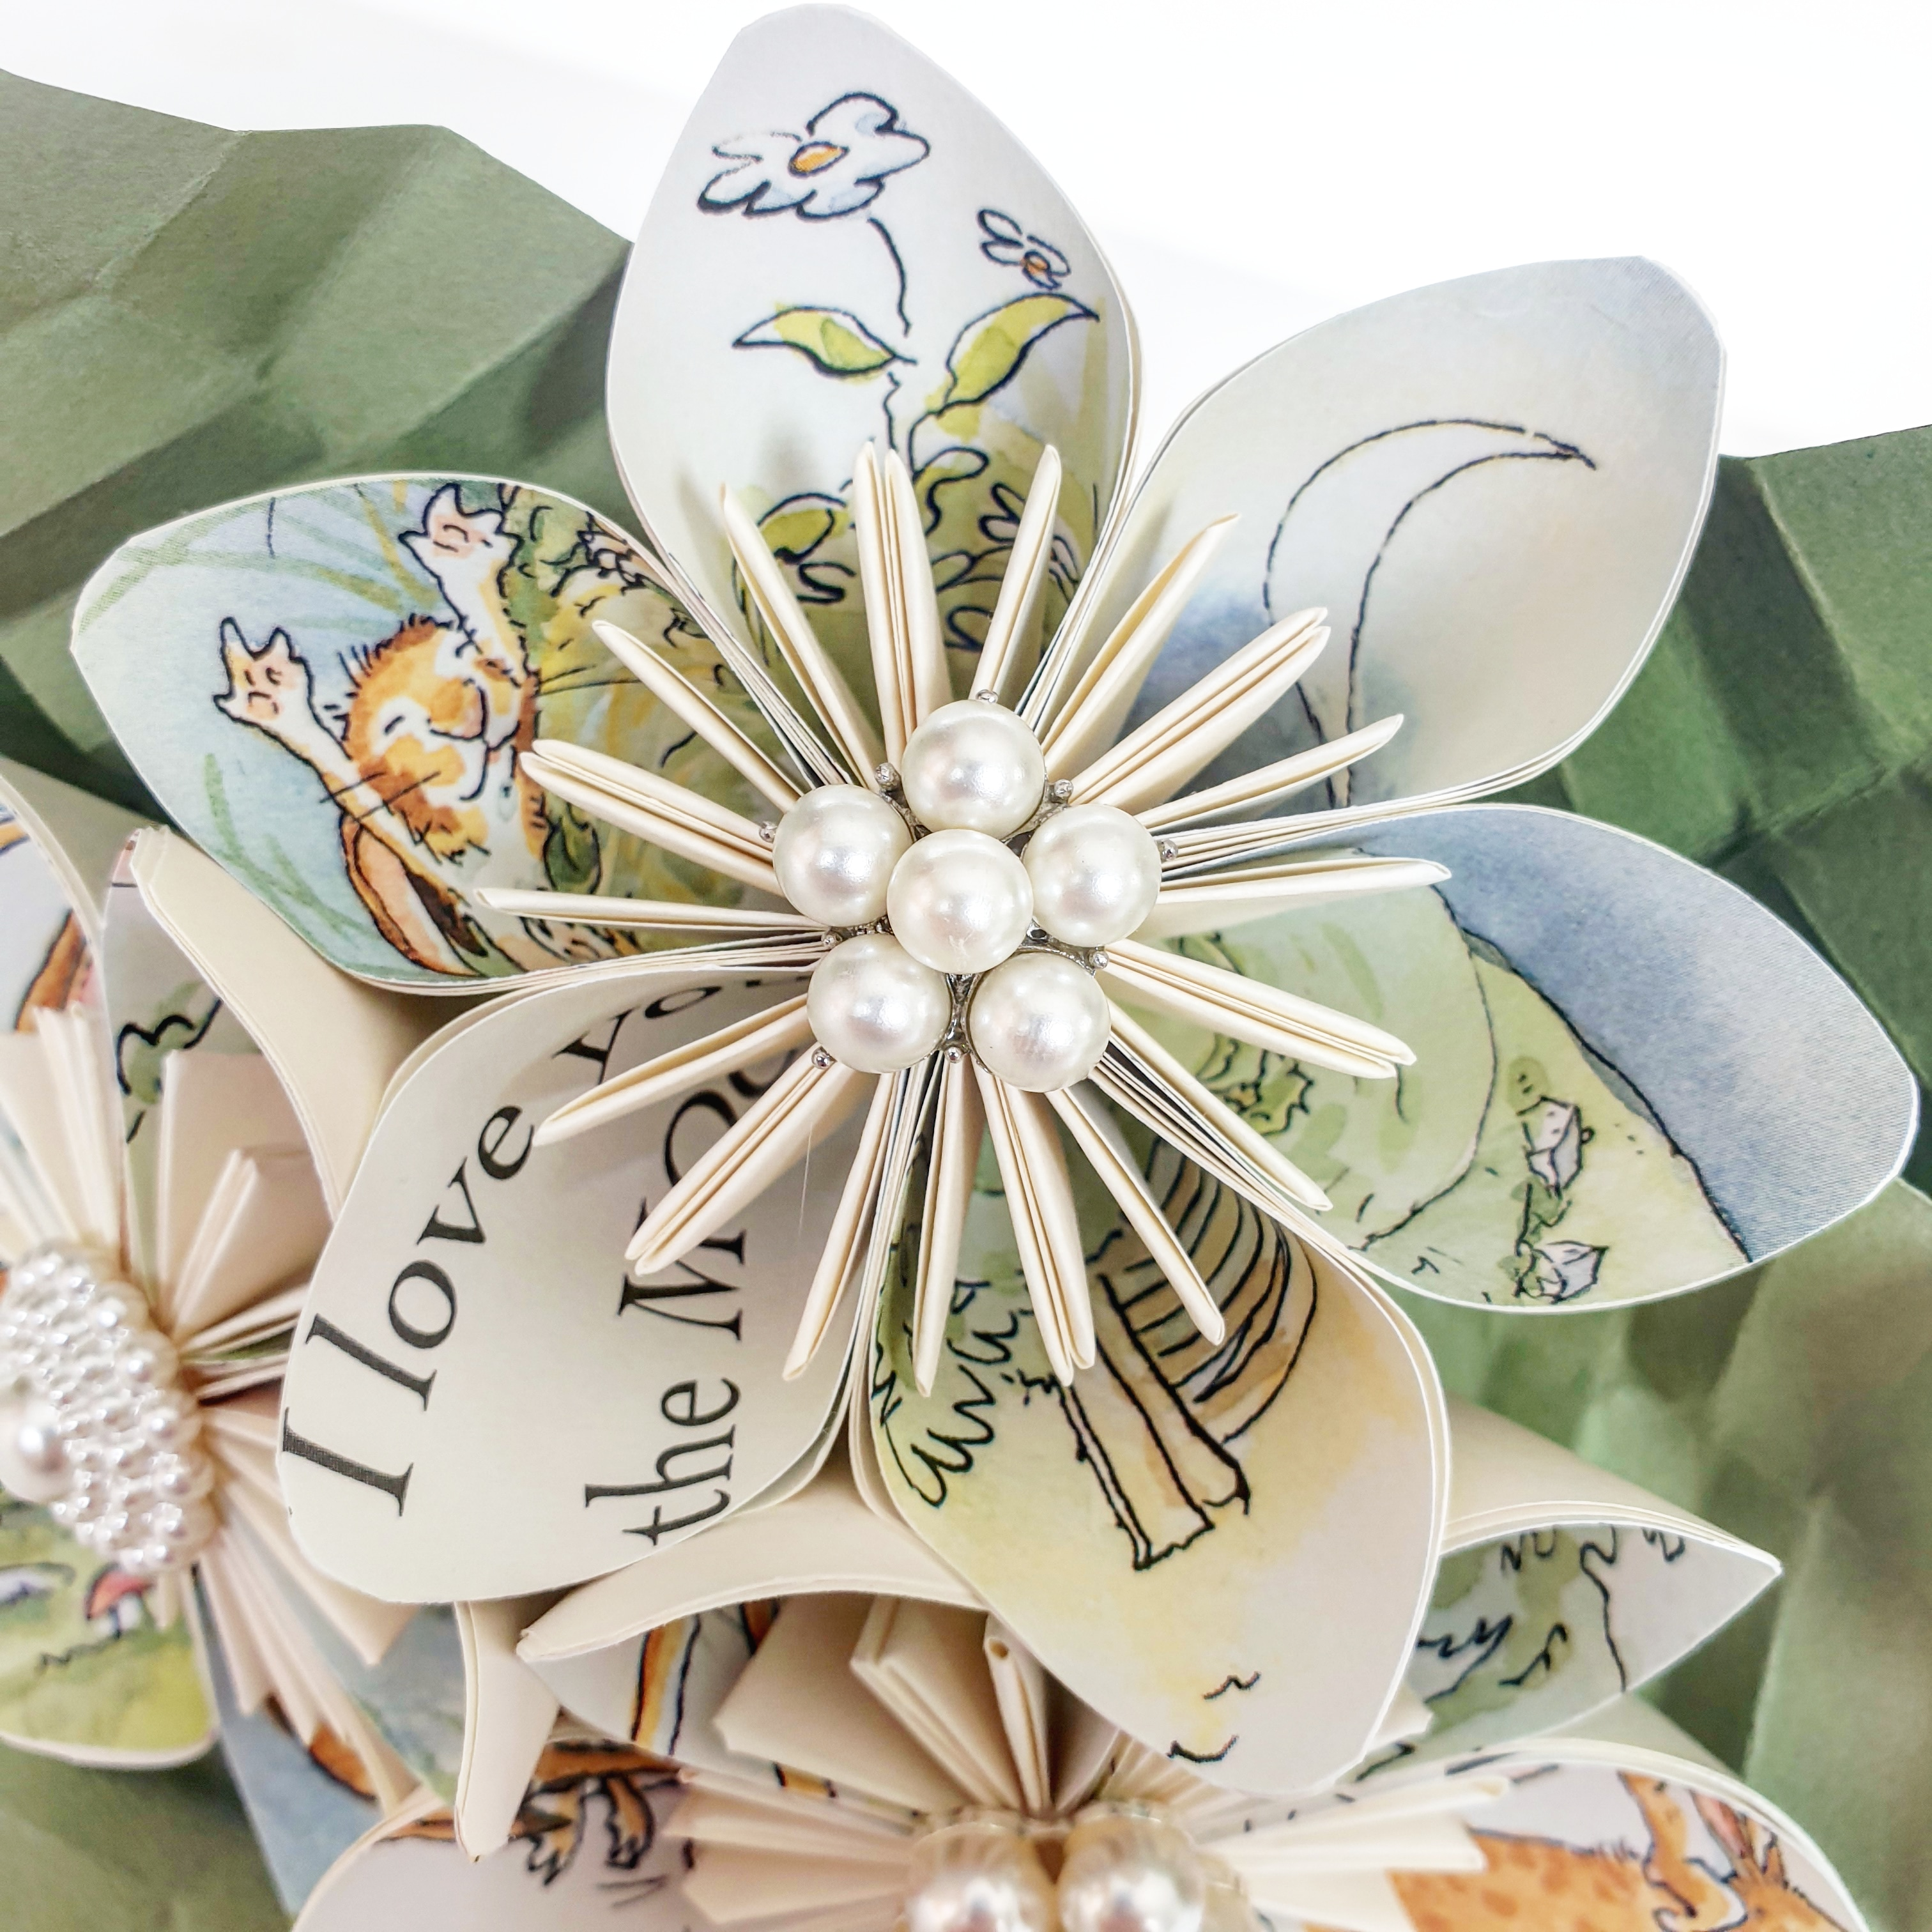 How Much I Love you paper bouquet flowers